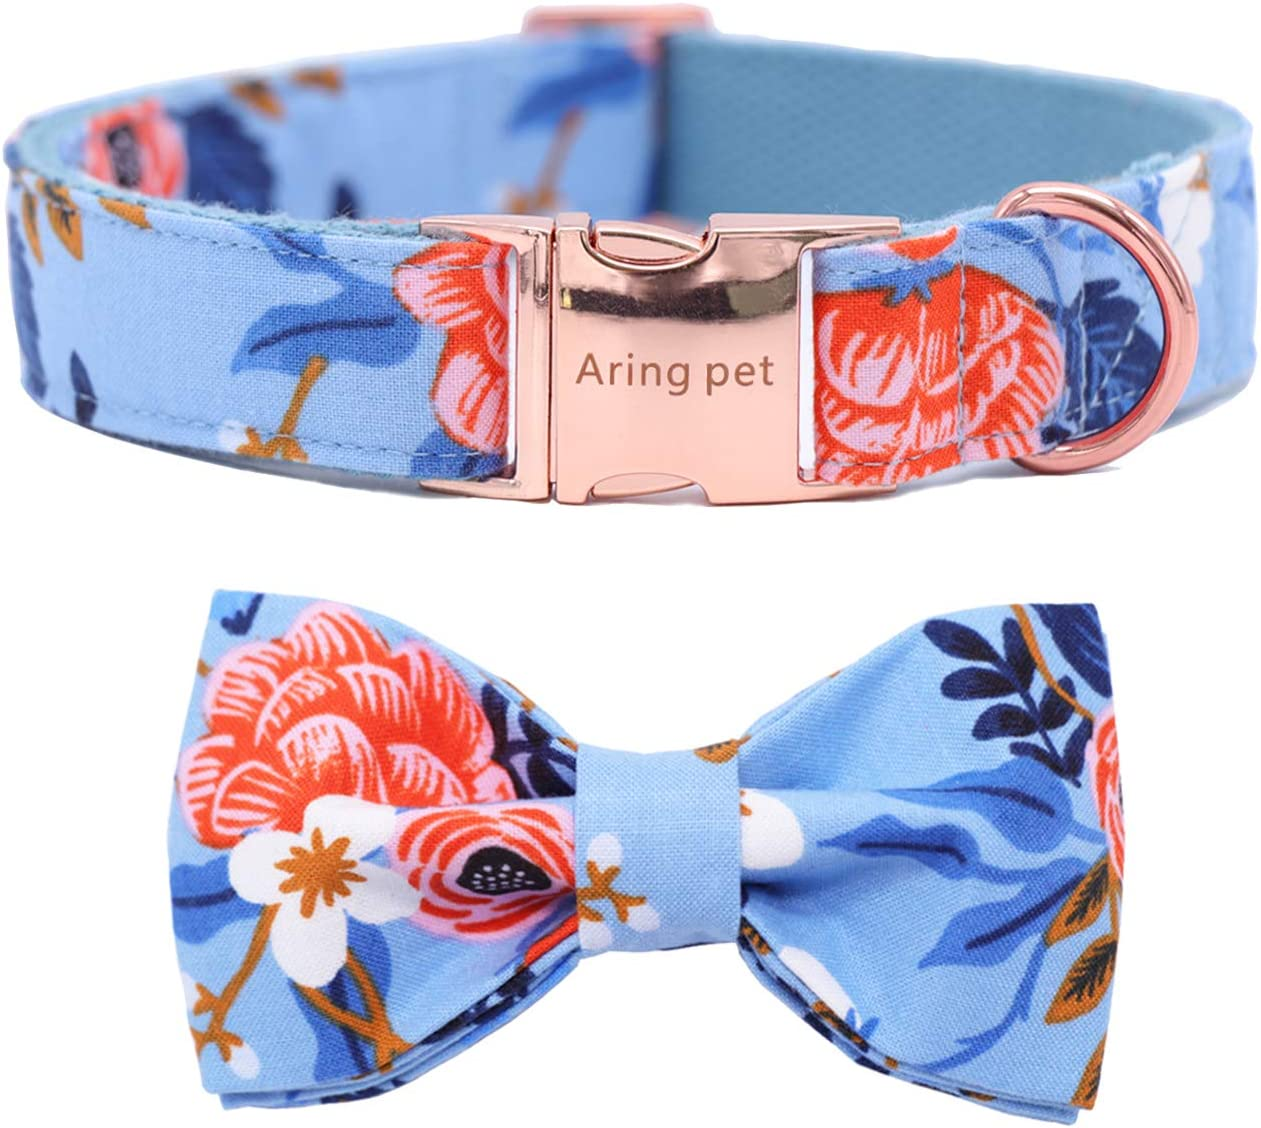 ARING PET Dog free Regular store Collar Bowtie Col Bow with Adjustable